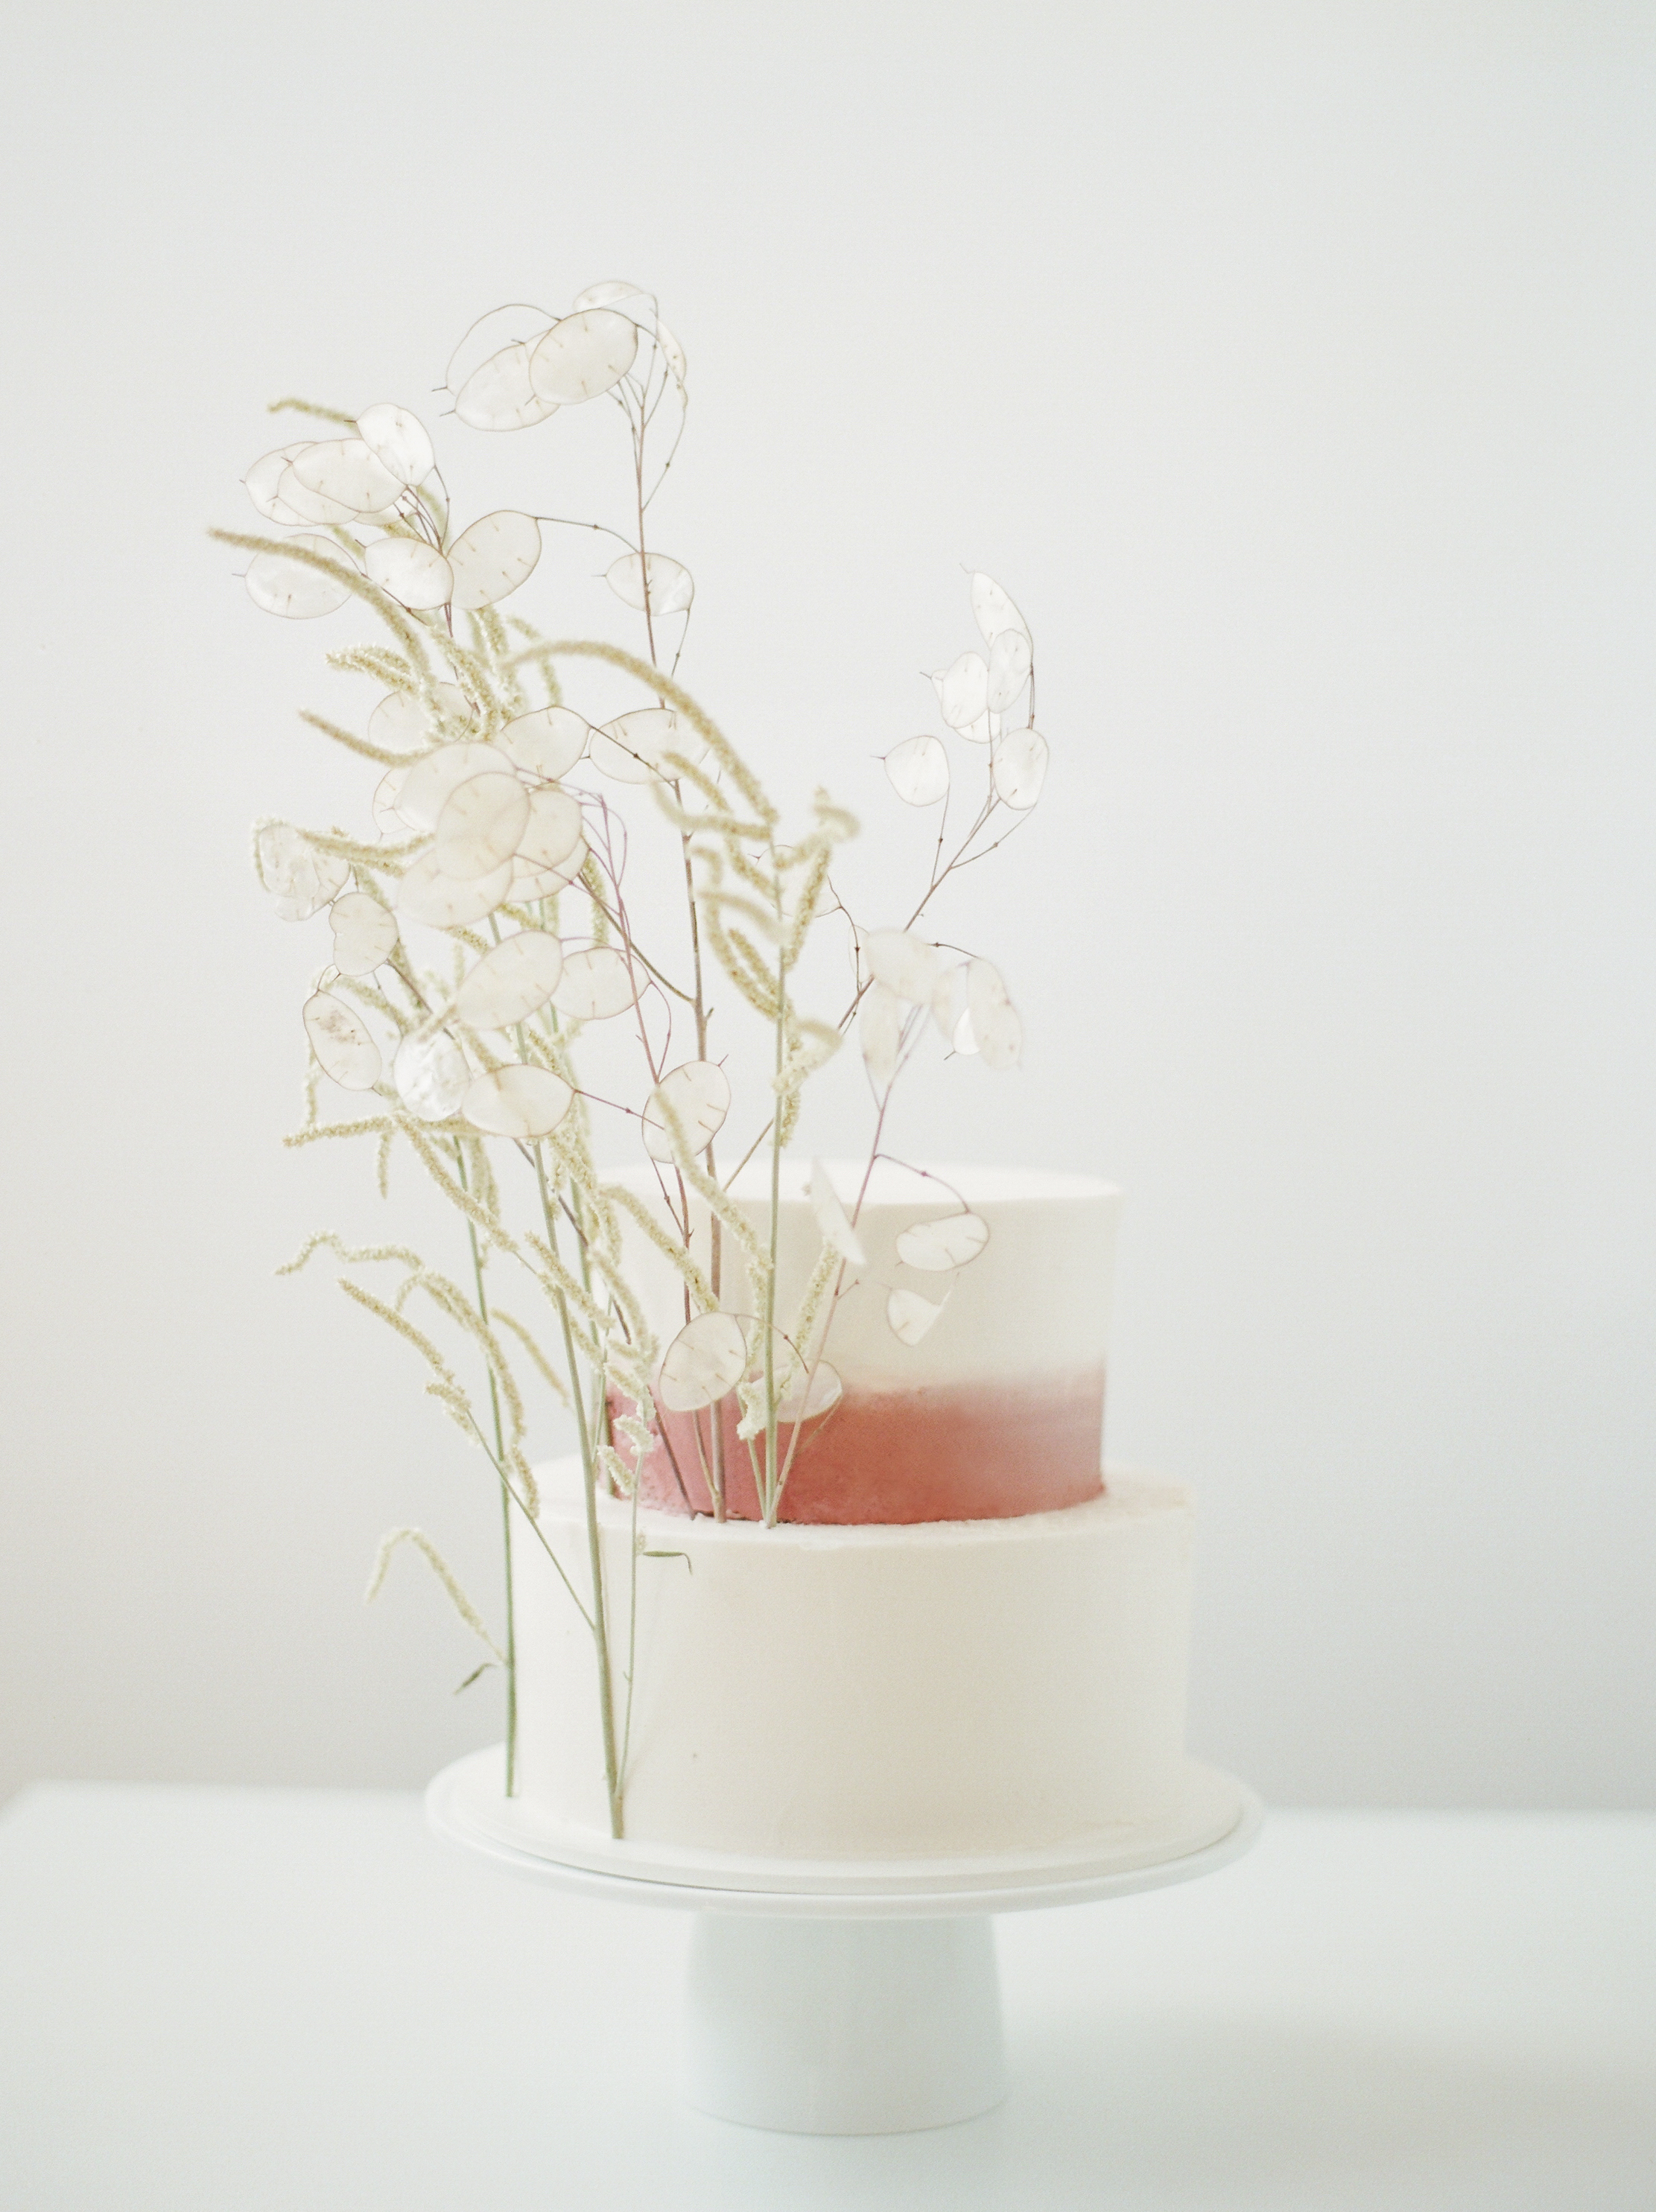 Foraged Floral cake play-40.jpg